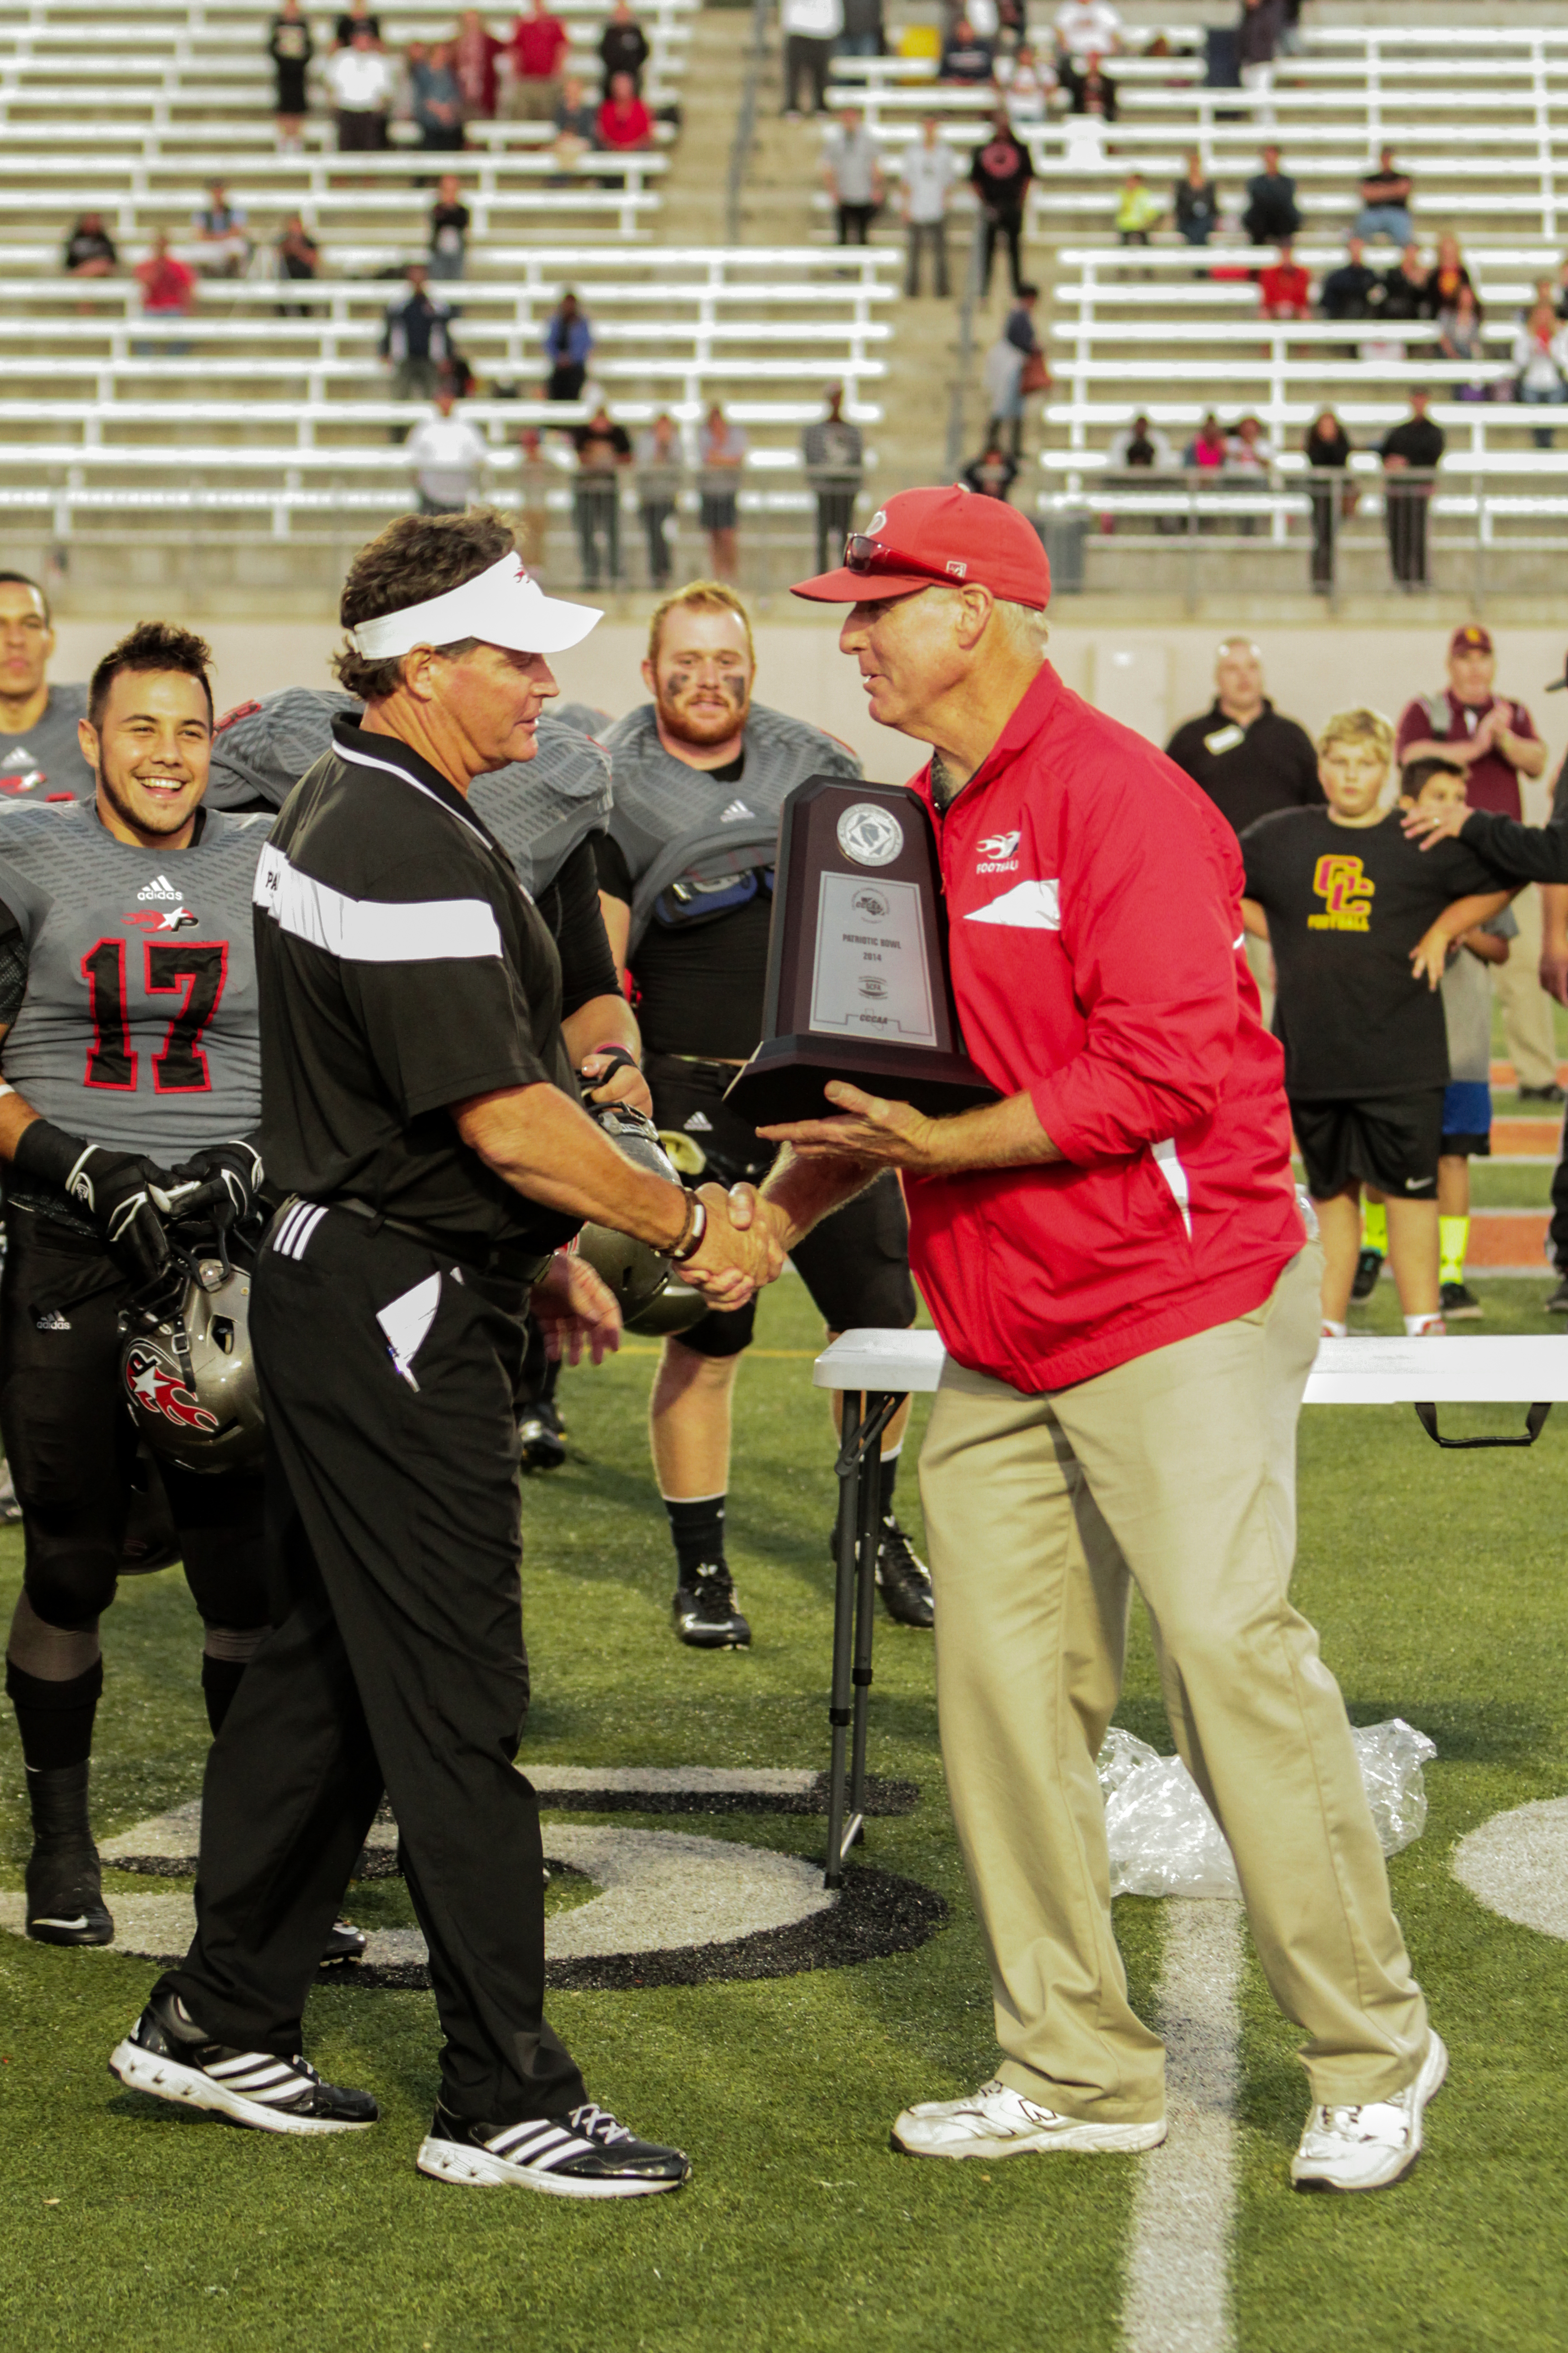 November 22, 2014 |Palomar Athletic Director Scott Cathcart presents Palomar Head Football Coach Joe Early with the Patriotic bowl trophy. The Comets defeated the Vaqueros 30-22 and win the Patriotic Bowl at Escondido HS, in Escondido California.| Photo Credit: Philip Farry | The Telescope